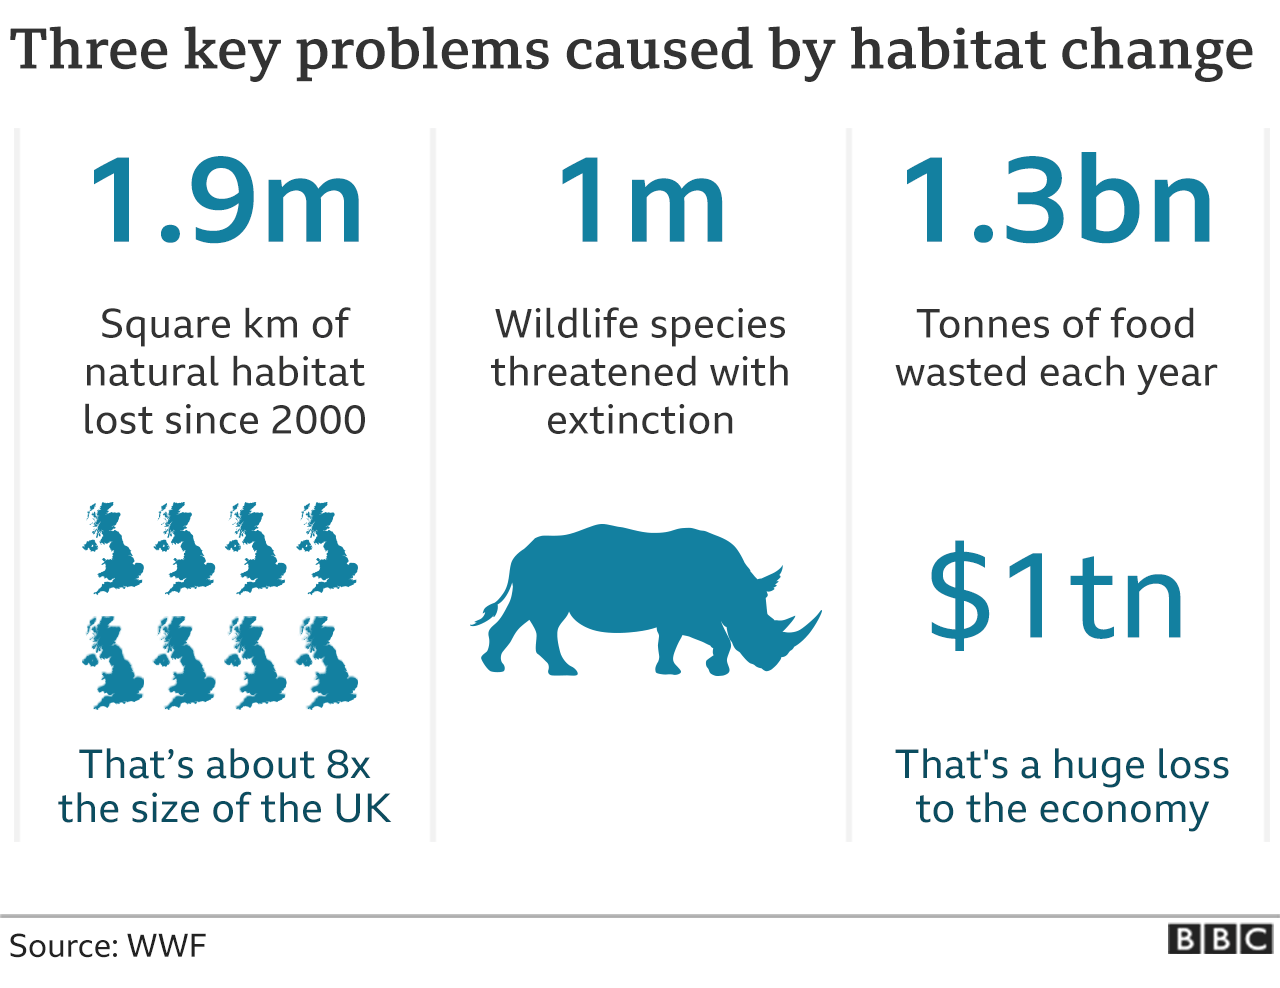 Problems caused by habitat loss